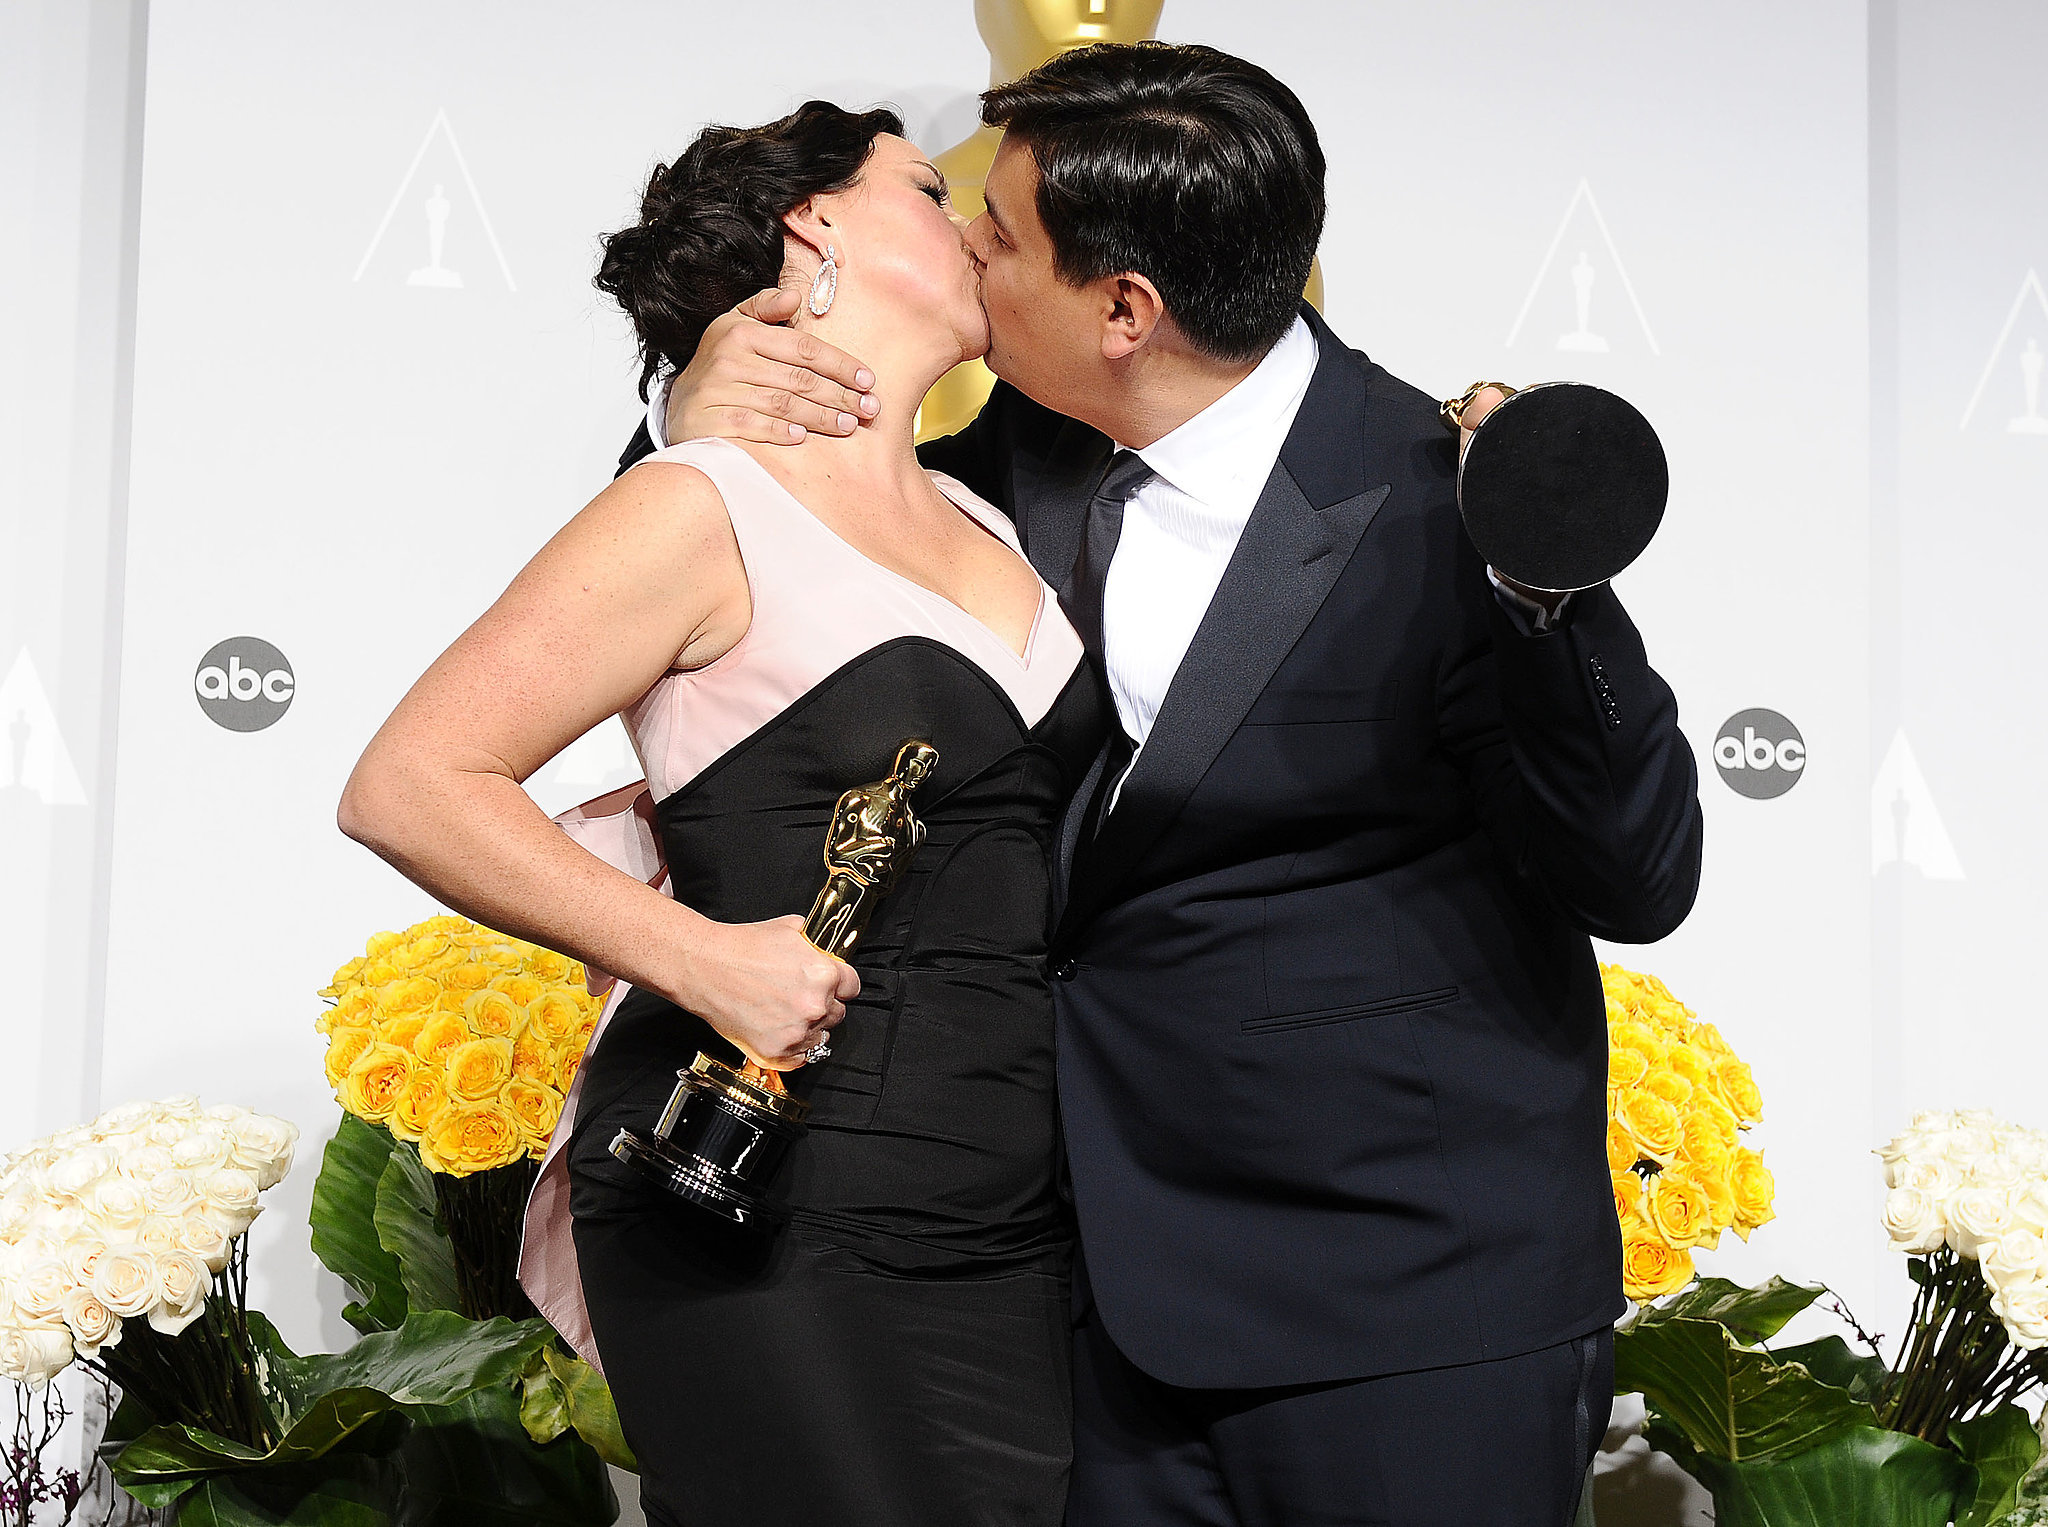 """The husband-and-wife team behind Frozen's """"Let It Go,"""" Robert Lopez and Kristen Anderson-Lopez, had a hot makeout after winning their Oscar."""